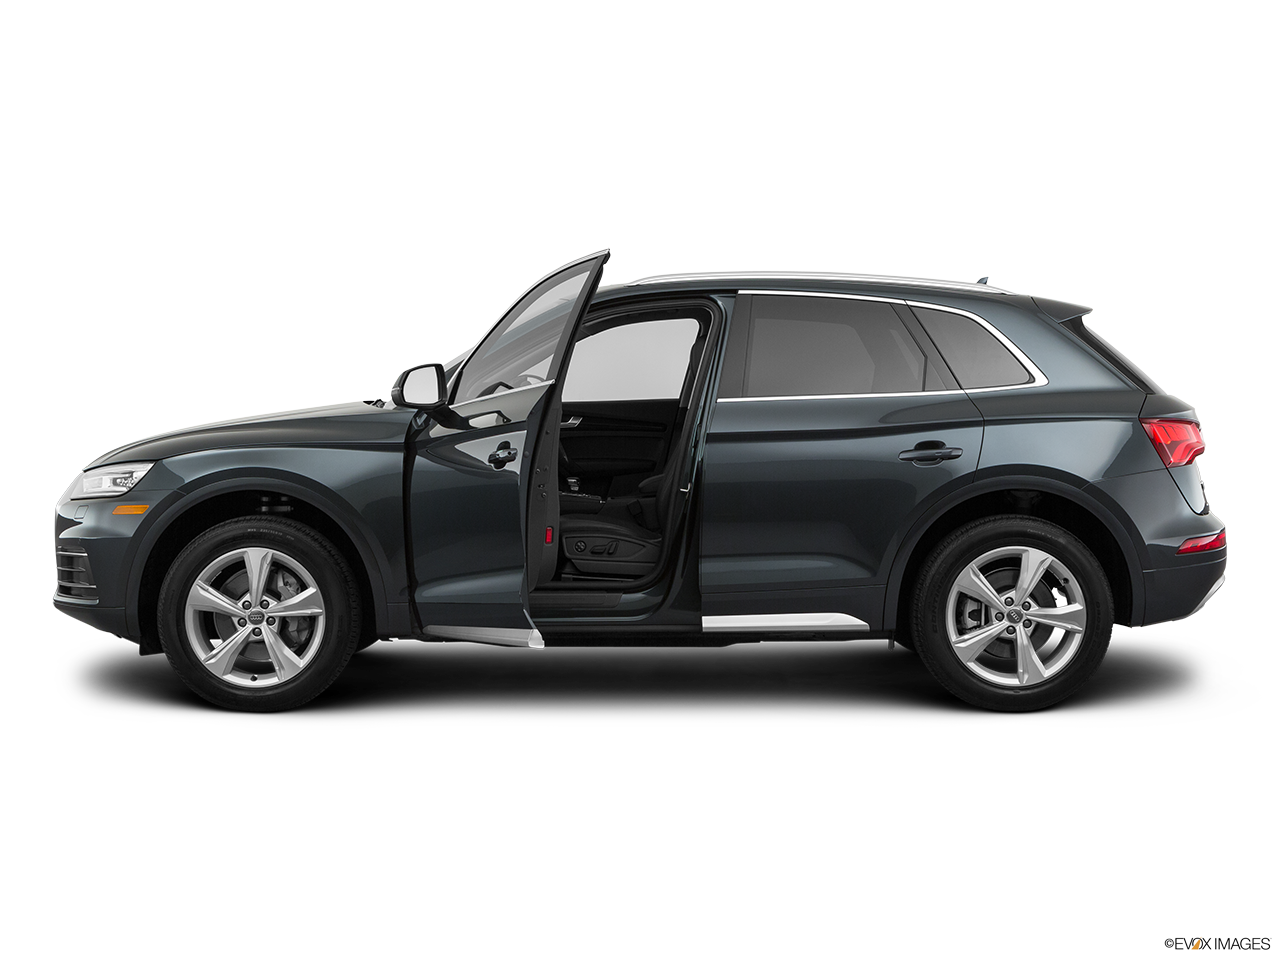 Side view of the Audi Q5 PHEV